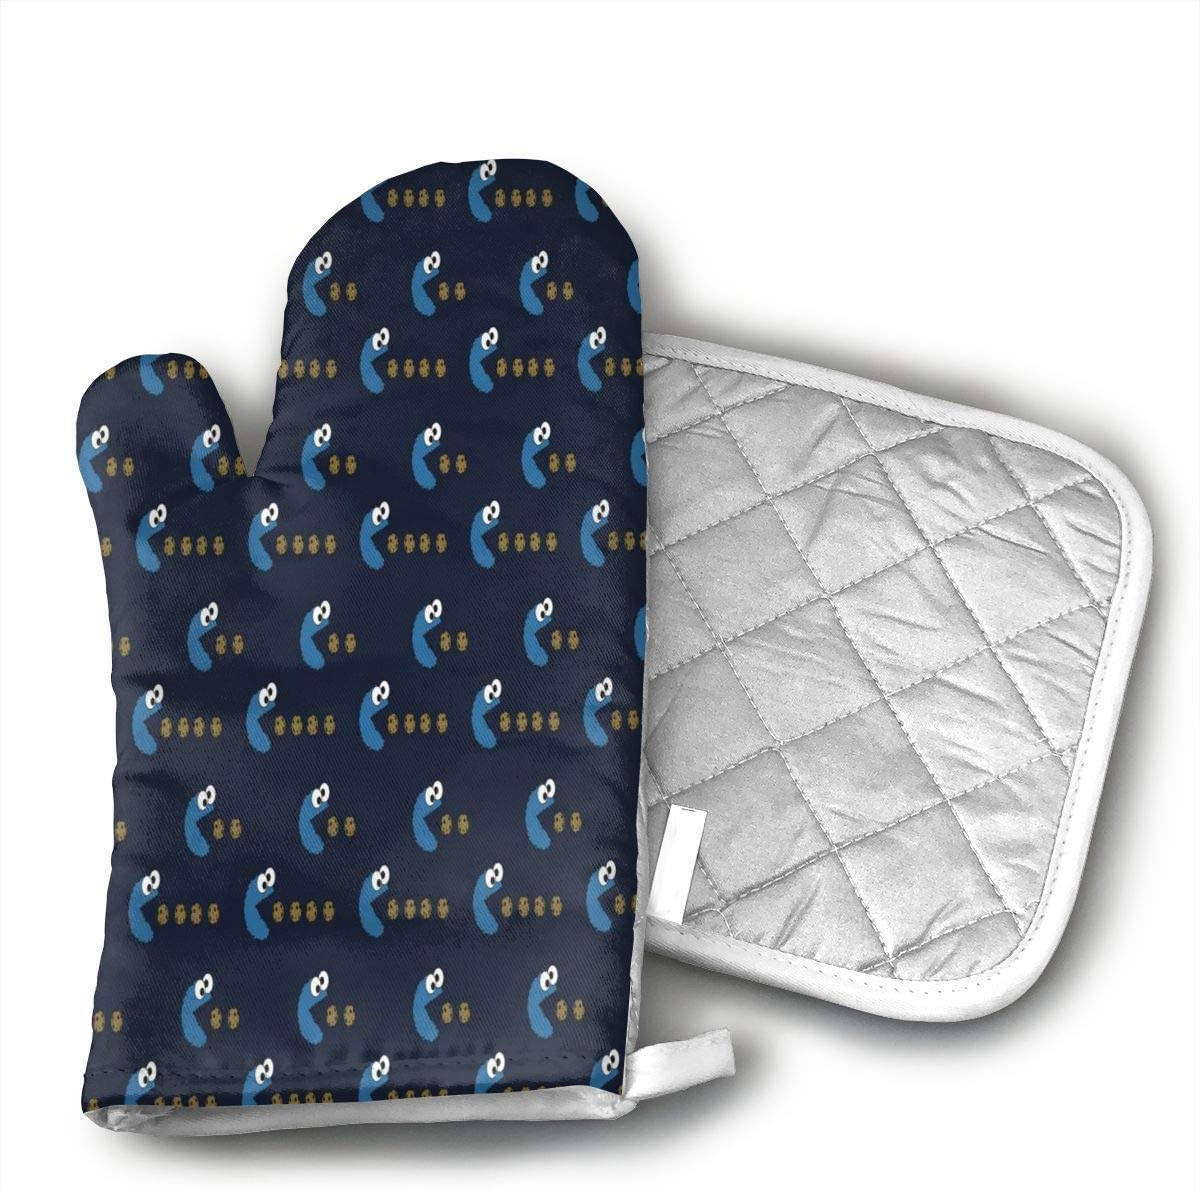 VFSFJKBG dgf Cookie Monster Set of Oven Mitt and Pot Holder or Oven Gloves-731% Cotton, High Heat Resistance, Machine Washable High Heat Resistant Polyester Filling for Thanks Giving, Christmas